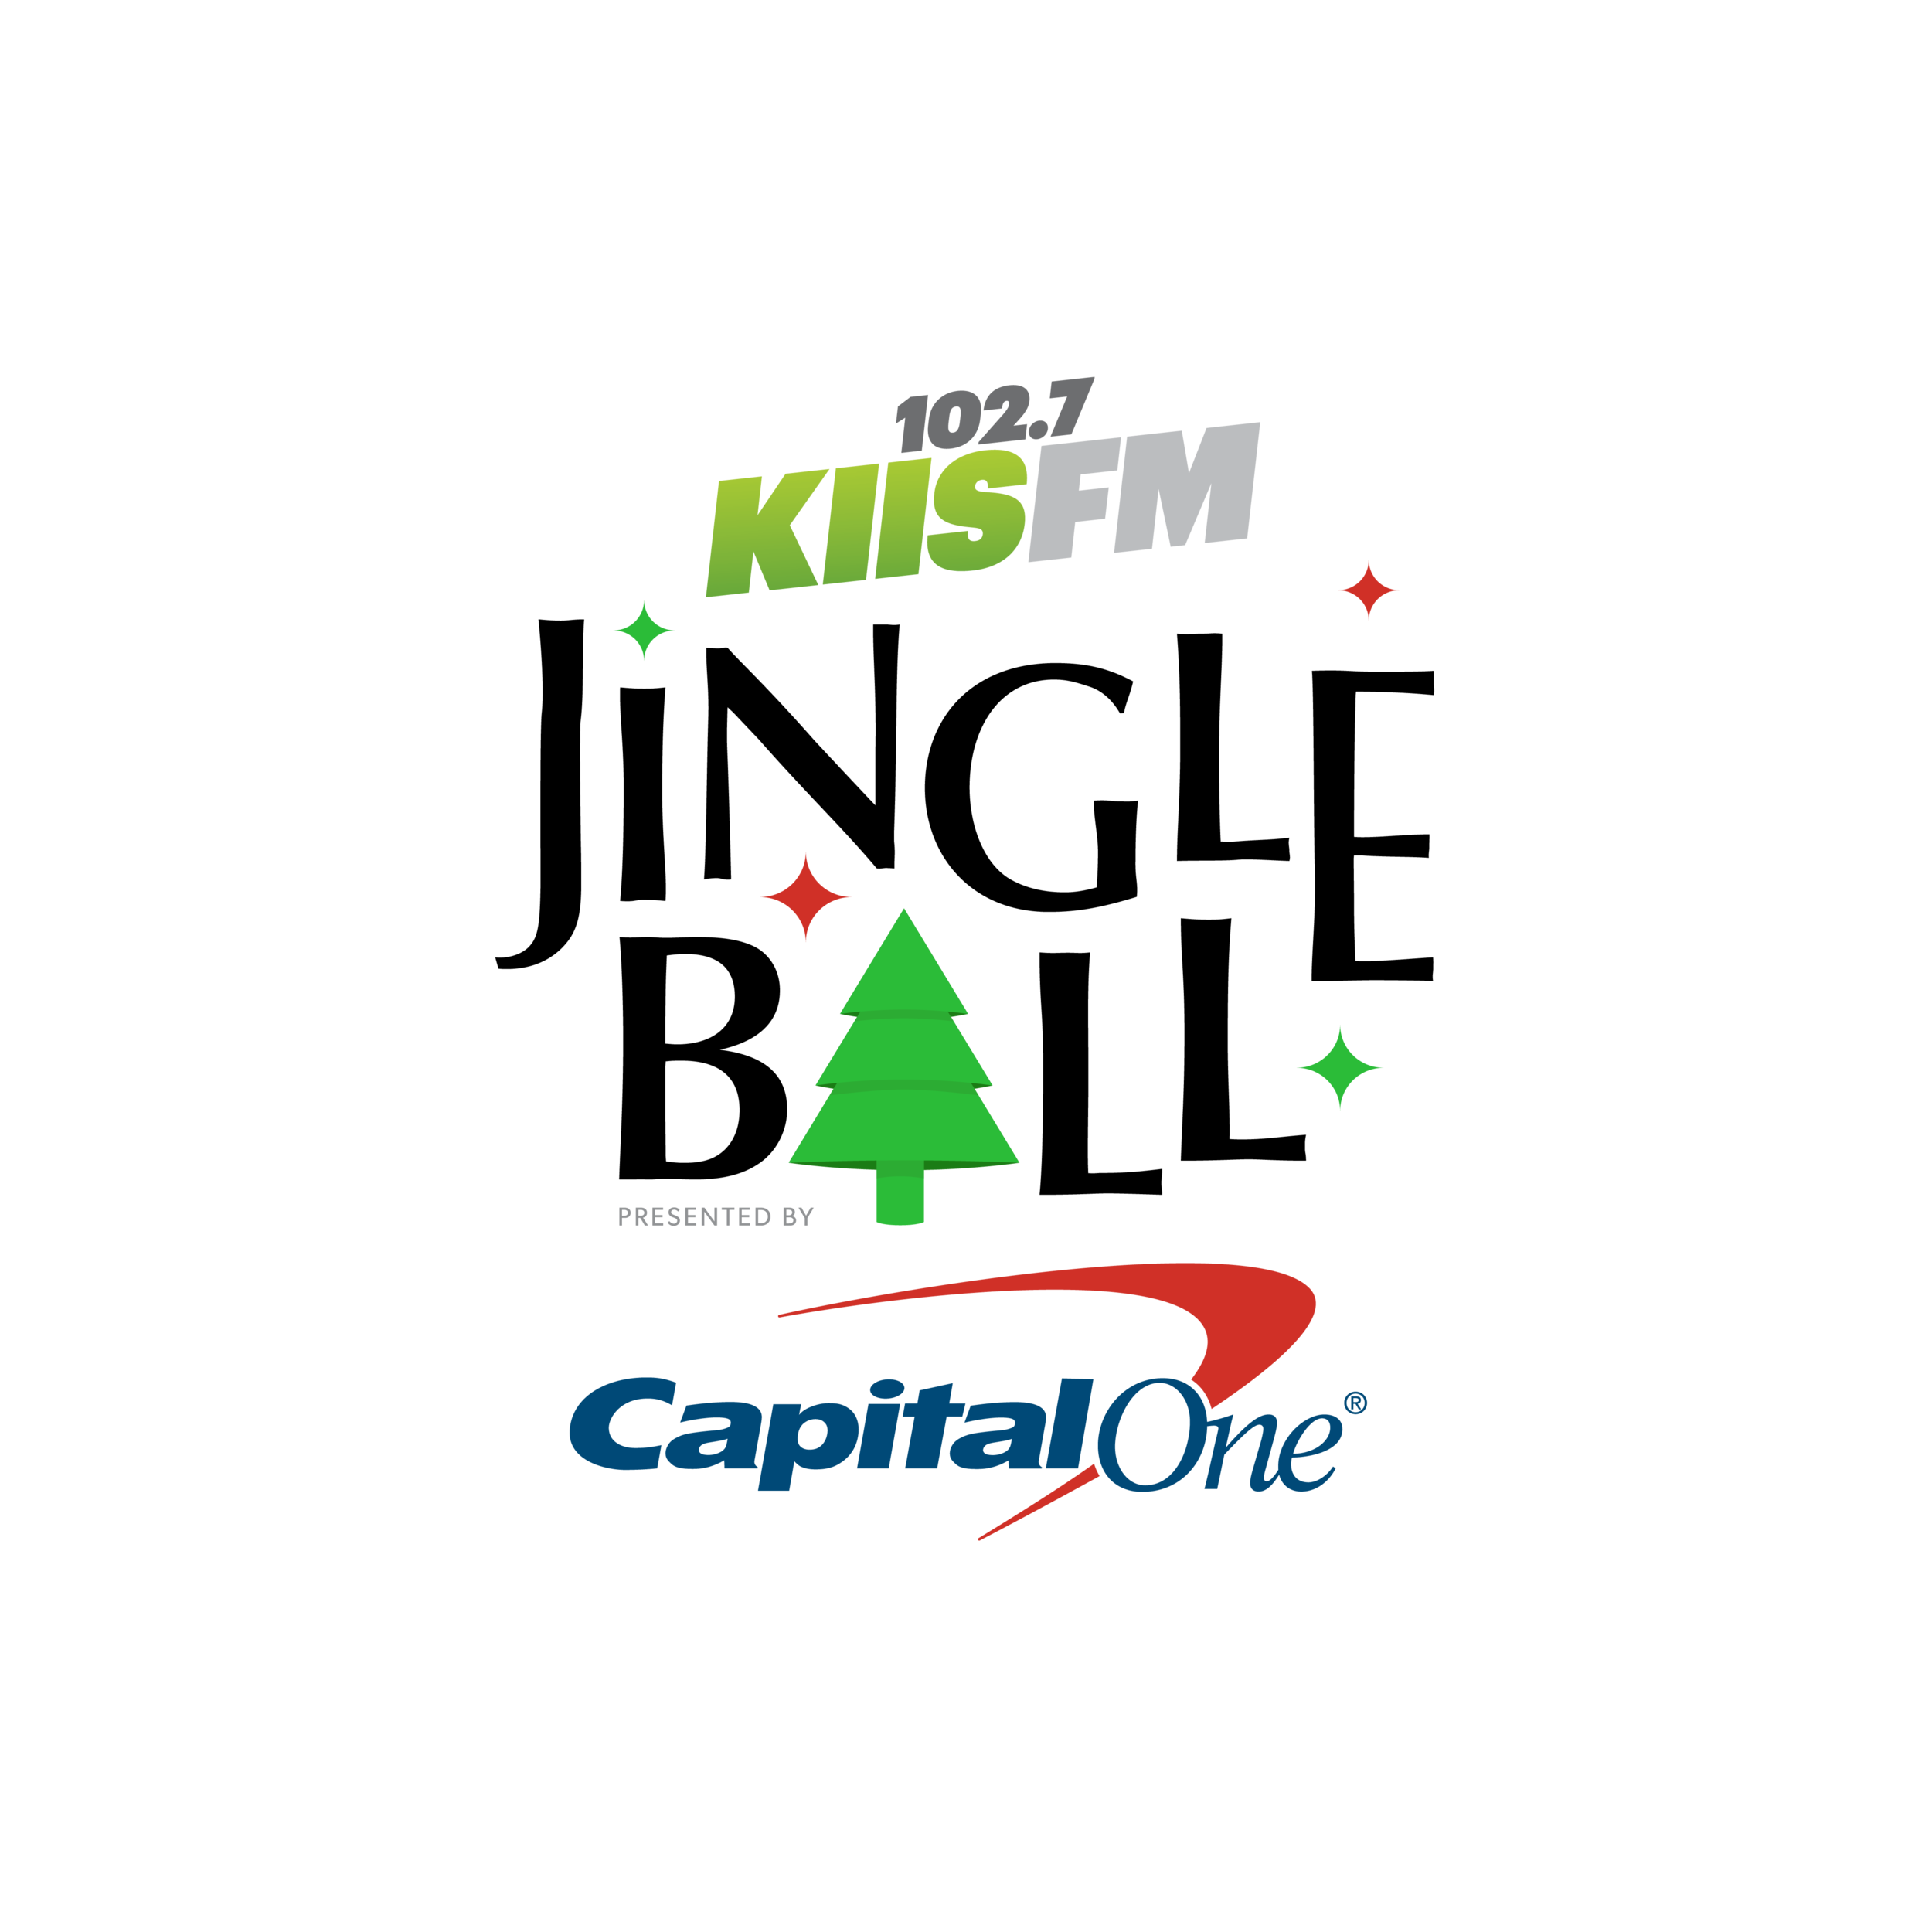 "KIIS FM JINGLE BALL 2019 PRESENTED BY    CAPITAL ONE® RINGS IN THE SEASON    WITH ANNUAL STAR-STUDDED HOLIDAY CONCERT    December 6 @ the 'Fabulous' Forum    Top Recording Artists Katy Perry, BTS, Billie Eilish, Sam Smith,    Camila Cabello and Halsey Lead All-Star Lineup    Celebration to Benefit The Ryan Seacrest Foundation    Los Angeles, CA  – September 27, 2019 –  102.7 KIIS FM ,  L.A.'s #1 Hit Music Station , today unveiled the star-studded lineup for the station's annual holiday concert,  KIIS FM Jingle Ball 2019 Presented by Capital One , taking place on  Friday, December 6 at 7:30 p.m.  at the  ""Fabulous"" Forum . KIIS FM Jingle Ball 2019 is part of the national iHeartRadio Jingle Ball Tour Presented by Capital One, the season's biggest annual music event that captures the holiday spirit of the iHeartRadio app, in Tampa; Dallas/Ft. Worth; Los Angeles; San Francisco; Minneapolis/St. Paul; Philadelphia; New York; Boston; Washington, D.C.; Chicago; Atlanta and Miami/Ft. Lauderdale.  Ryan Seacrest, host of KIIS FM's top rated ""On Air with Ryan Seacrest"" morning show, officially announced the all-star performers for KIIS FM Jingle Ball 2019 which will include:  Katy Perry, BTS, Billie Eilish, Sam Smith, Camila Cabello, Halsey, French Montana, Lizzo  and  Normani .  For the fifth straight year, Capital One will be the national presenting partner for the iHeartRadio Jingle Ball Tour. Capital One cardholders will be the first to get exclusive access to high demand tickets through a special Capital One Cardholder Pre-Sale. The iHeartRadio Jingle Ball Capital One Cardholder Pre-Sale will begin Monday, October 7 at 10:00 a.m. local time and will run through Wednesday, October 9 at 10:00 a.m. local time, or while supplies last. Tickets will be available at  www.iHeartRadio.com/CapitalOne . Any remaining tickets will go on sale to the general public on Friday, October 11 at 12 p.m. local market time and will be available at  www.iHeartRadio.com/JingleBall .  Capital One Access Passes will be available to add on any ticket purchase in Los Angeles, Chicago and New York during the iHeartRadio Jingle Ball Capital One Cardholder Pre-Sale while supplies last. The Capital One Access Pass gives the cardholder access to an exclusive Capital One Cardholder pre-event with an iHeartRadio Jingle Ball artist and more. At each of the tour stops, one lucky Capital One cardholder will have the opportunity to announce an artist on stage. To learn more about these exclusive cardholder opportunities, visit  www.iHeartRadio.com/CapitalOne .  Capital One cardholders have the exclusive opportunity to add on Capital One Access Passes to any ticket purchase in Los Angeles, Chicago and New York during the Capital One Cardholder Pre-Sale, while supplies last. The Capital One Access Pass gives cardholders access to an exclusive VIP Capital One Cardholder event before the show with a private performance by an iHeartRadio Jingle Ball artist, backstage tour and more. To learn more about these exclusive cardholder opportunities, visit  www.iHeartRadio.com/CapitalOne .  ""This is a fantastic Jingle Ball lineup featuring the biggest stars in music right now,"" said John Ivey, President of CHR Programming Strategy for iHeartMedia Los Angeles and Program Director for KIIS FM. ""Some are Jingle Ball veterans, and some are new to our party, playing Jingle Ball for their very first time. Trust me, you don't want to miss this show.""  Every year, 102.7 KIIS FM Jingle Ball gives back to the community to celebrate the holiday season. This year's official charity for KIIS FM Jingle Ball 2019 is the Ryan Seacrest Foundation  – $1.00 of each ticket sold will be donated to the non-profit organization, which is dedicated to inspiring today's youth through entertainment and education focused initiatives.  ""The Ryan Seacrest Foundation is excited to team up with the iHeartRadio Jingle Ball Tour for its seventh consecutive year, allowing us to build and maintain Seacrest Studios in children's hospitals across the country,"" said Meredith Seacrest, Executive Director & COO of the Ryan Seacrest Foundation. ""Seacrest Studios provides an uplifting and entertaining environment where kids can host their own radio and TV shows, play games, interview celebrities and forget they are in the hospital for a while. We're incredibly grateful for our partnership with iHeartMedia, which has helped us create one-of-a-kind experiences and bring hundreds of artists to patients nationwide.""  Proud partners of this year's  national  iHeartRadio Jingle Ball Tour Presented by Capital One include: Aflac, Cinnamon Toast Crunch, The CW Network, Jumanji: The Next Level and Macy's. Multimarket partners include American Girl, Delta Dental, Mercedes-Benz and Powercrunch with more to be announced. KIIS FM Jingle Ball 2019 is also sponsored locally by Chevrolet.  For up-to-minute information on  KIIS FM Jingle Ball 2019,  log on to  www.kiisfm.com ,  keyword: Jingle Ball  or listen to  102.7 KIIS FM  on-air or online via the station's website, as well as on  iHeartRadio.com  and the iHeartRadio mobile app.  102.7 KIIS FM is a leading media outlet in the iHeartMedia Los Angeles market with multiple platforms, including its broadcast stations; live events; data; and its digital businesses and platforms, including mobile, social and its own iHeartRadio, iHeartMedia's free all-in-one digital music, podcasting and live streaming radio service – with more than 2 billion app downloads and more than 130 million registered users."